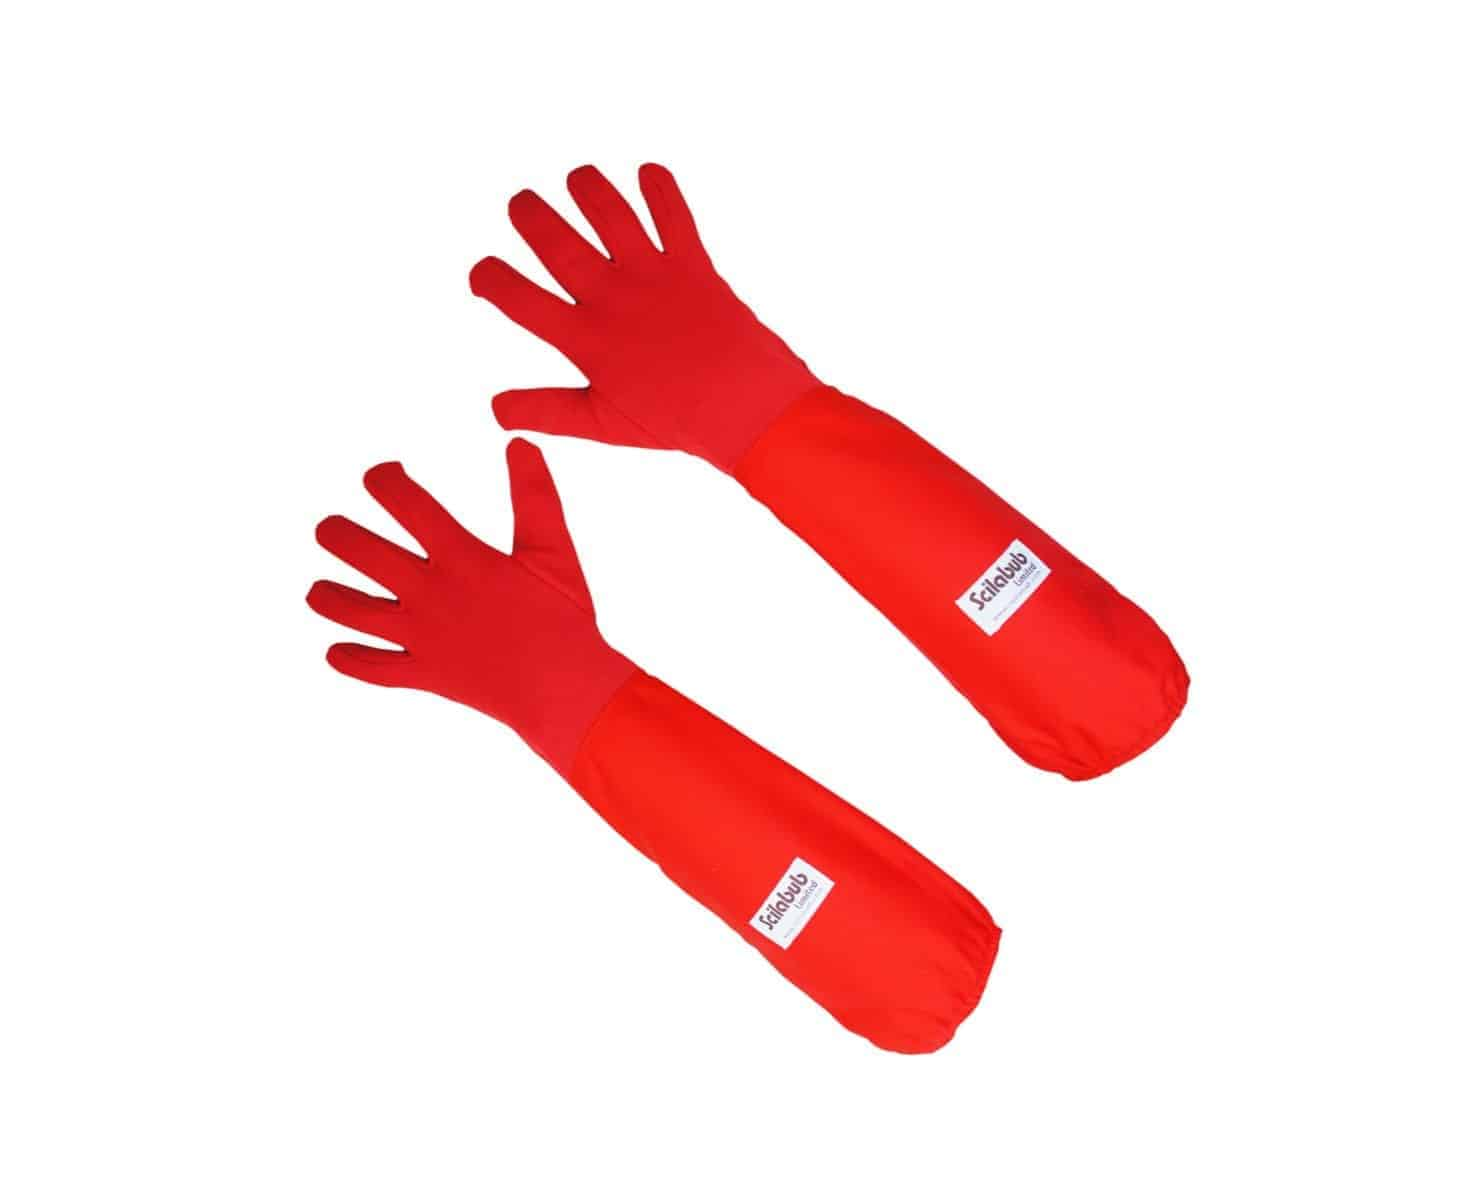 Autoclavable Gauntlet Gloves in Red